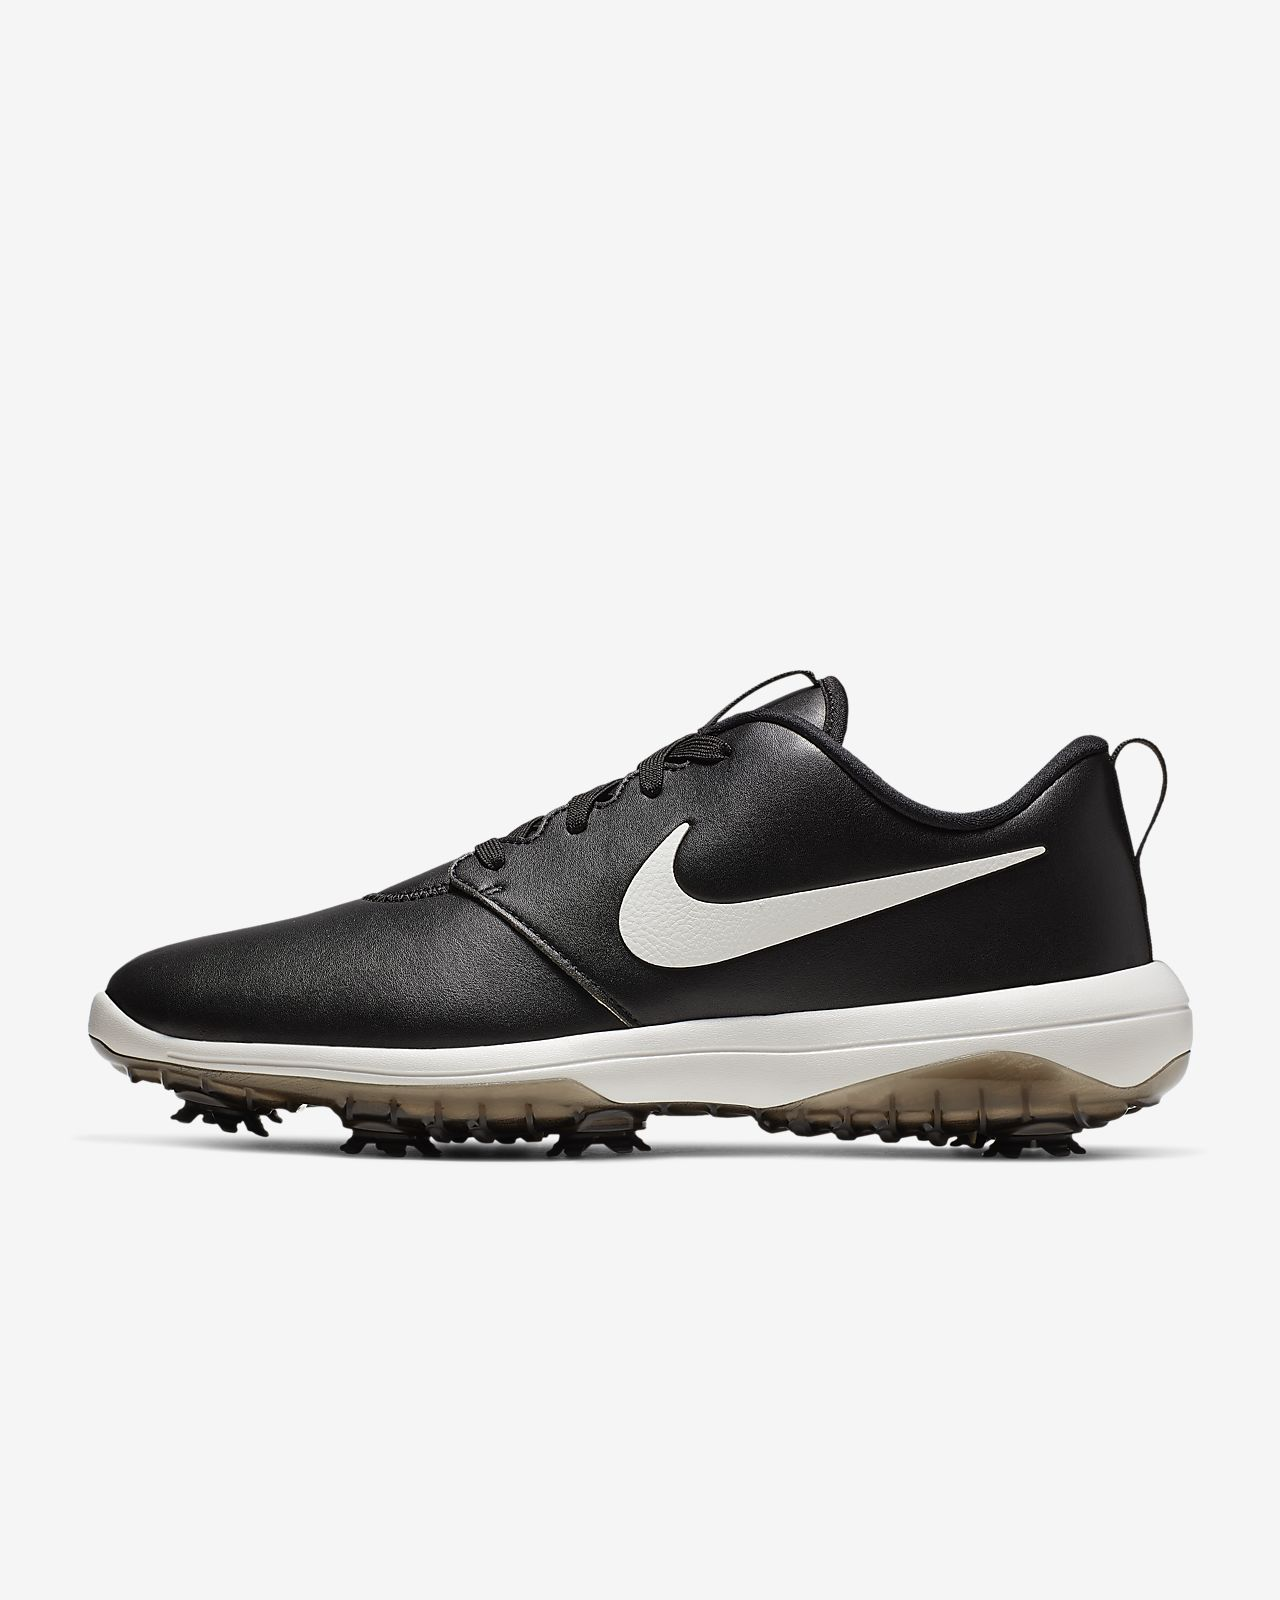 828a44d85e17 Nike Roshe G Tour Men s Golf Shoe. Nike.com CA